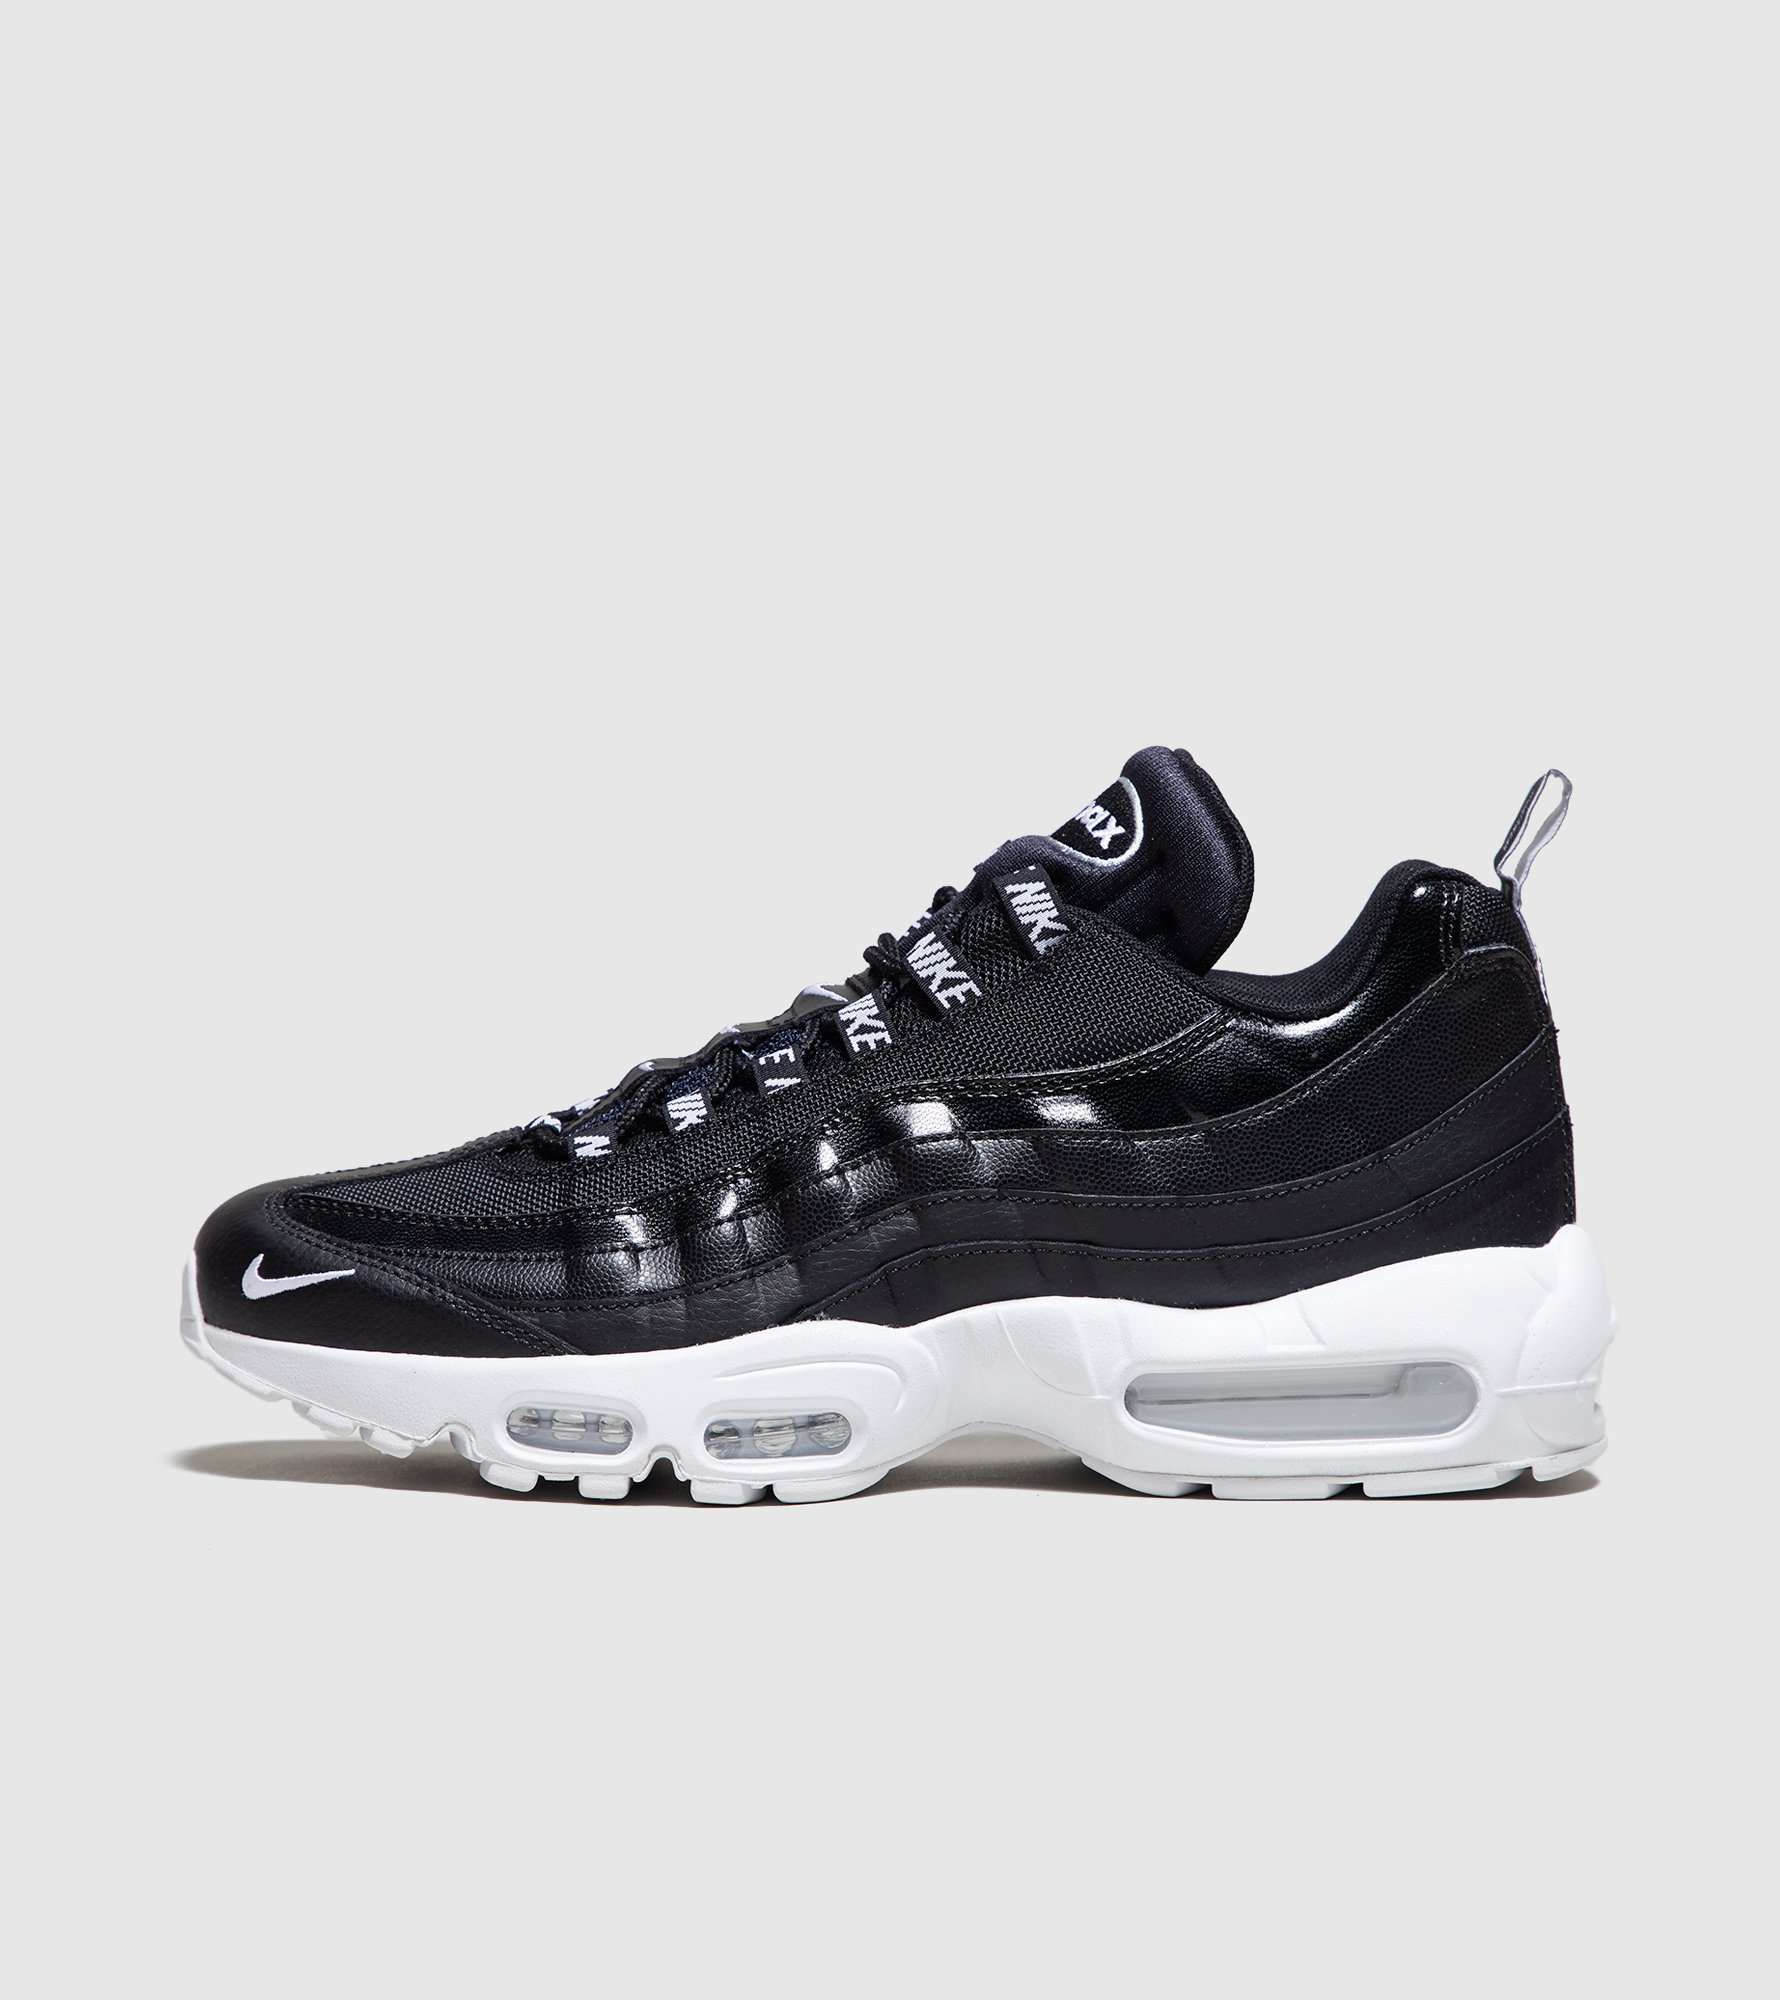 Nike Air Max 95 Premium - find out more on our site. Find the ...